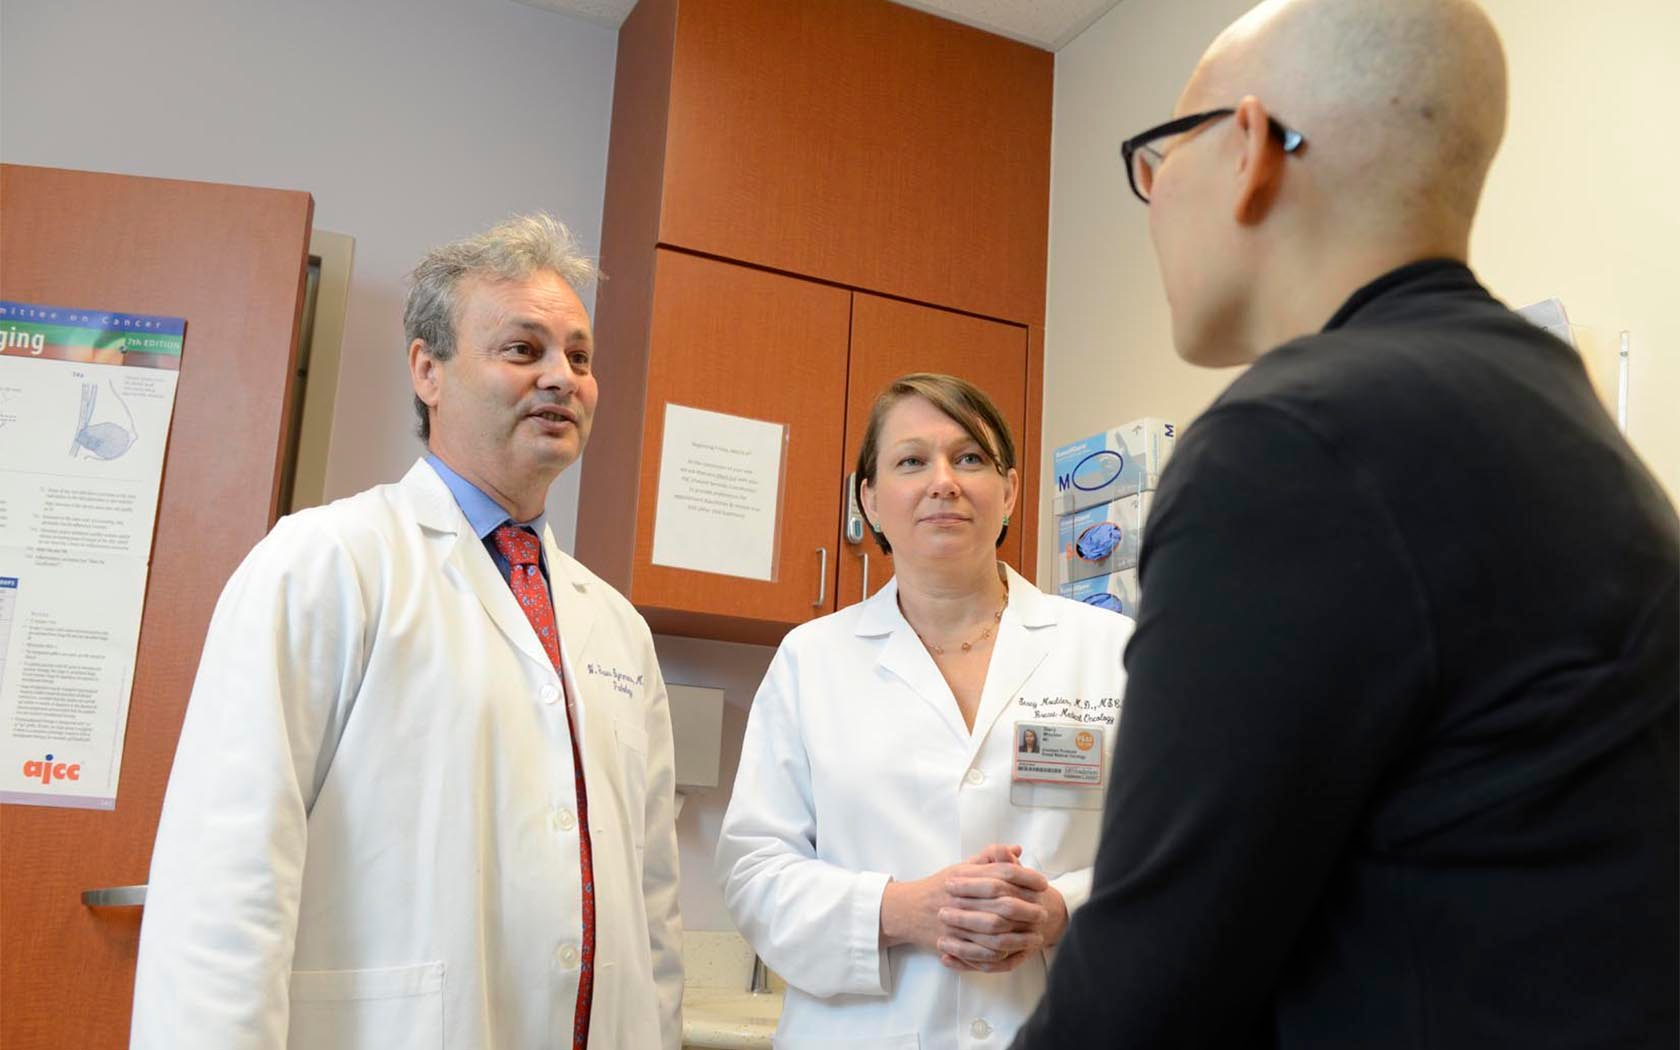 W. Fraser Symmans, M.D., and Stacy Moulder, M.D. with patient Janine Blackwell